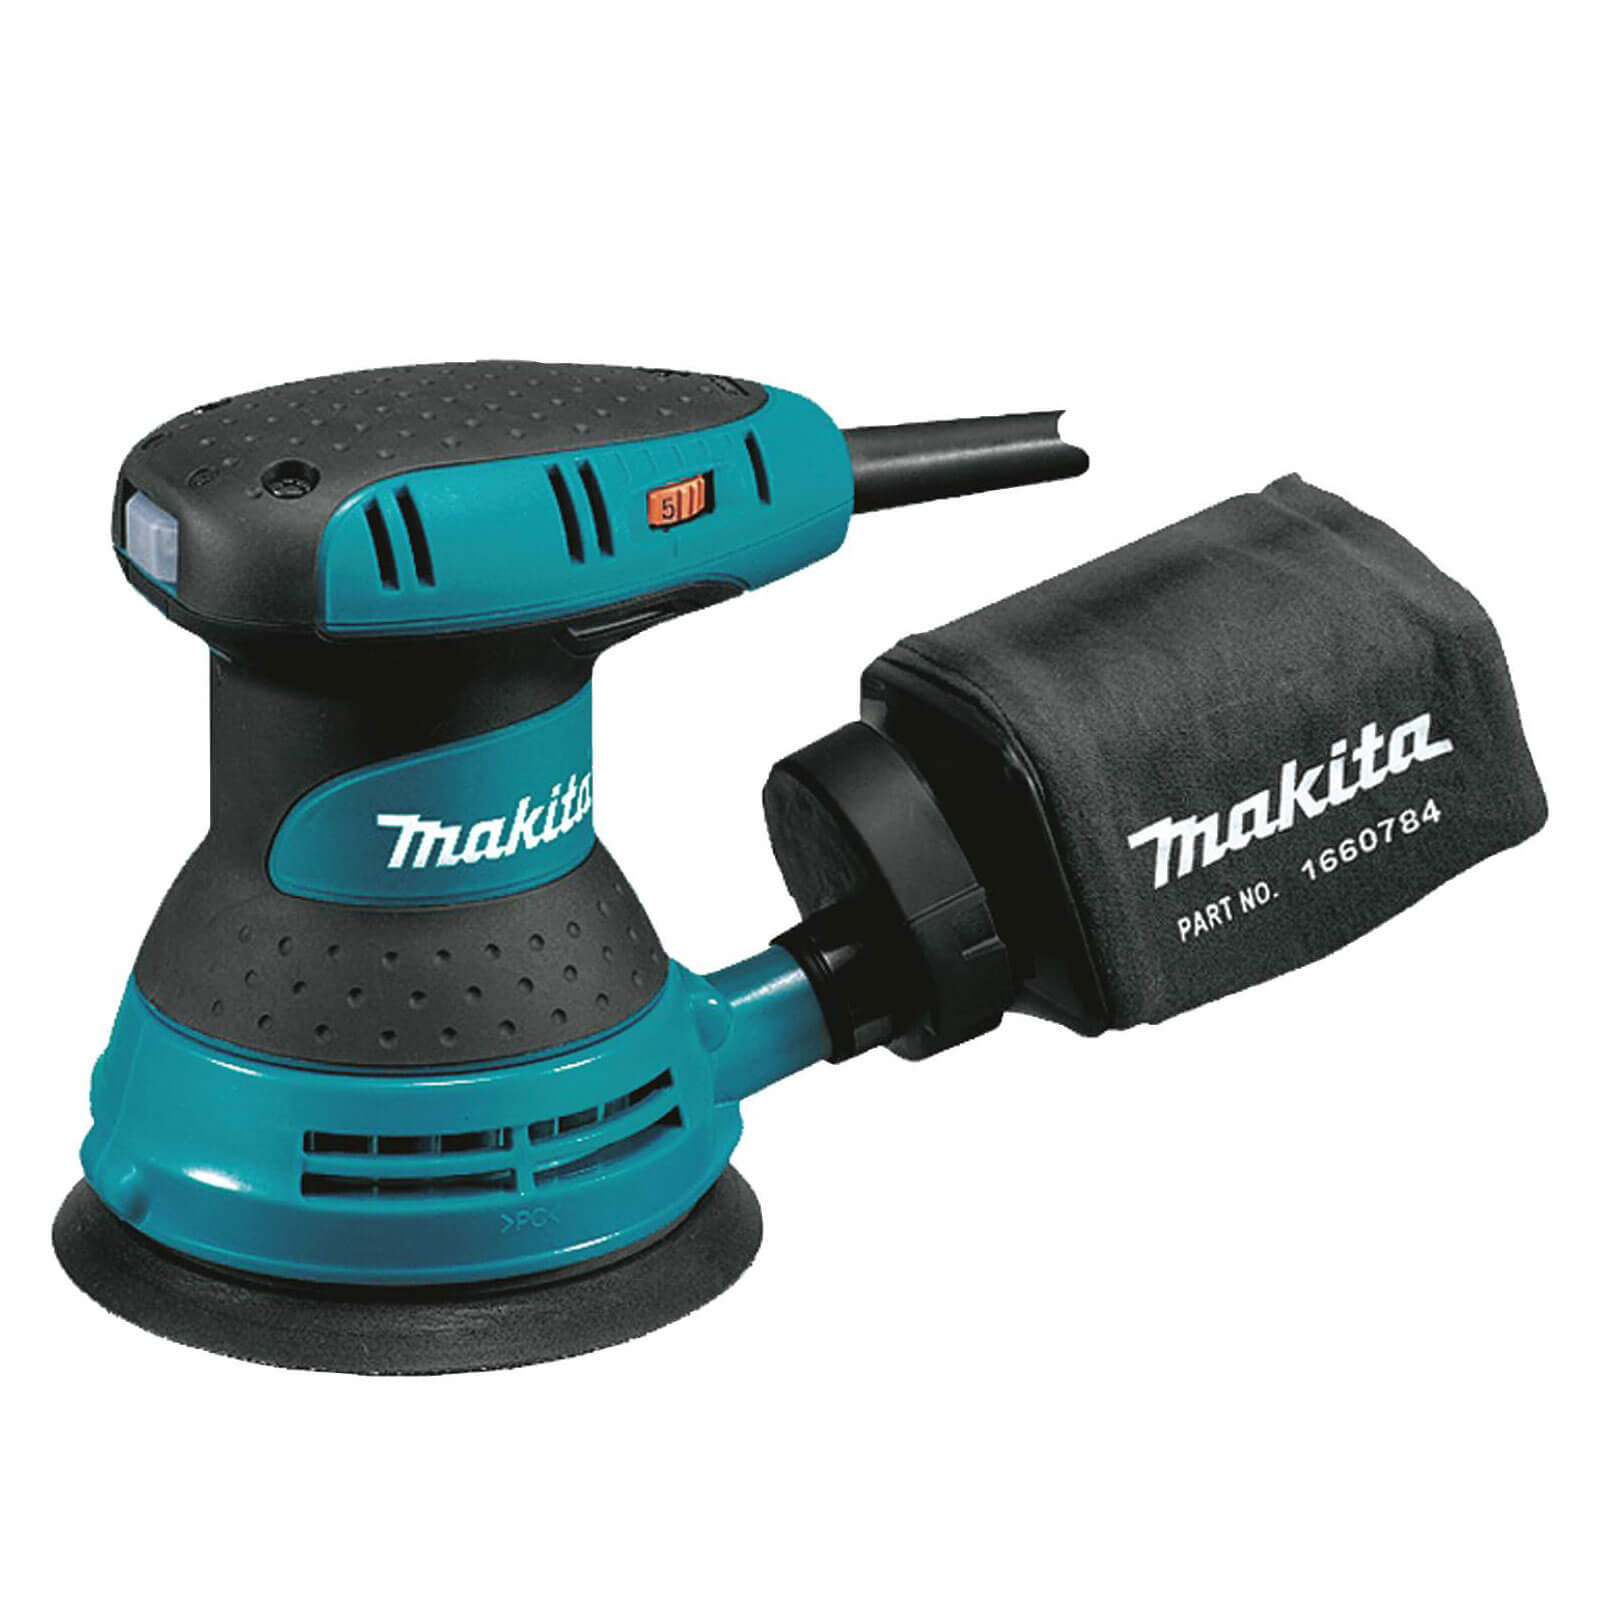 Makita BO5031 Random Orbital Sander with Speed Control 125mm Disc 300w 240v